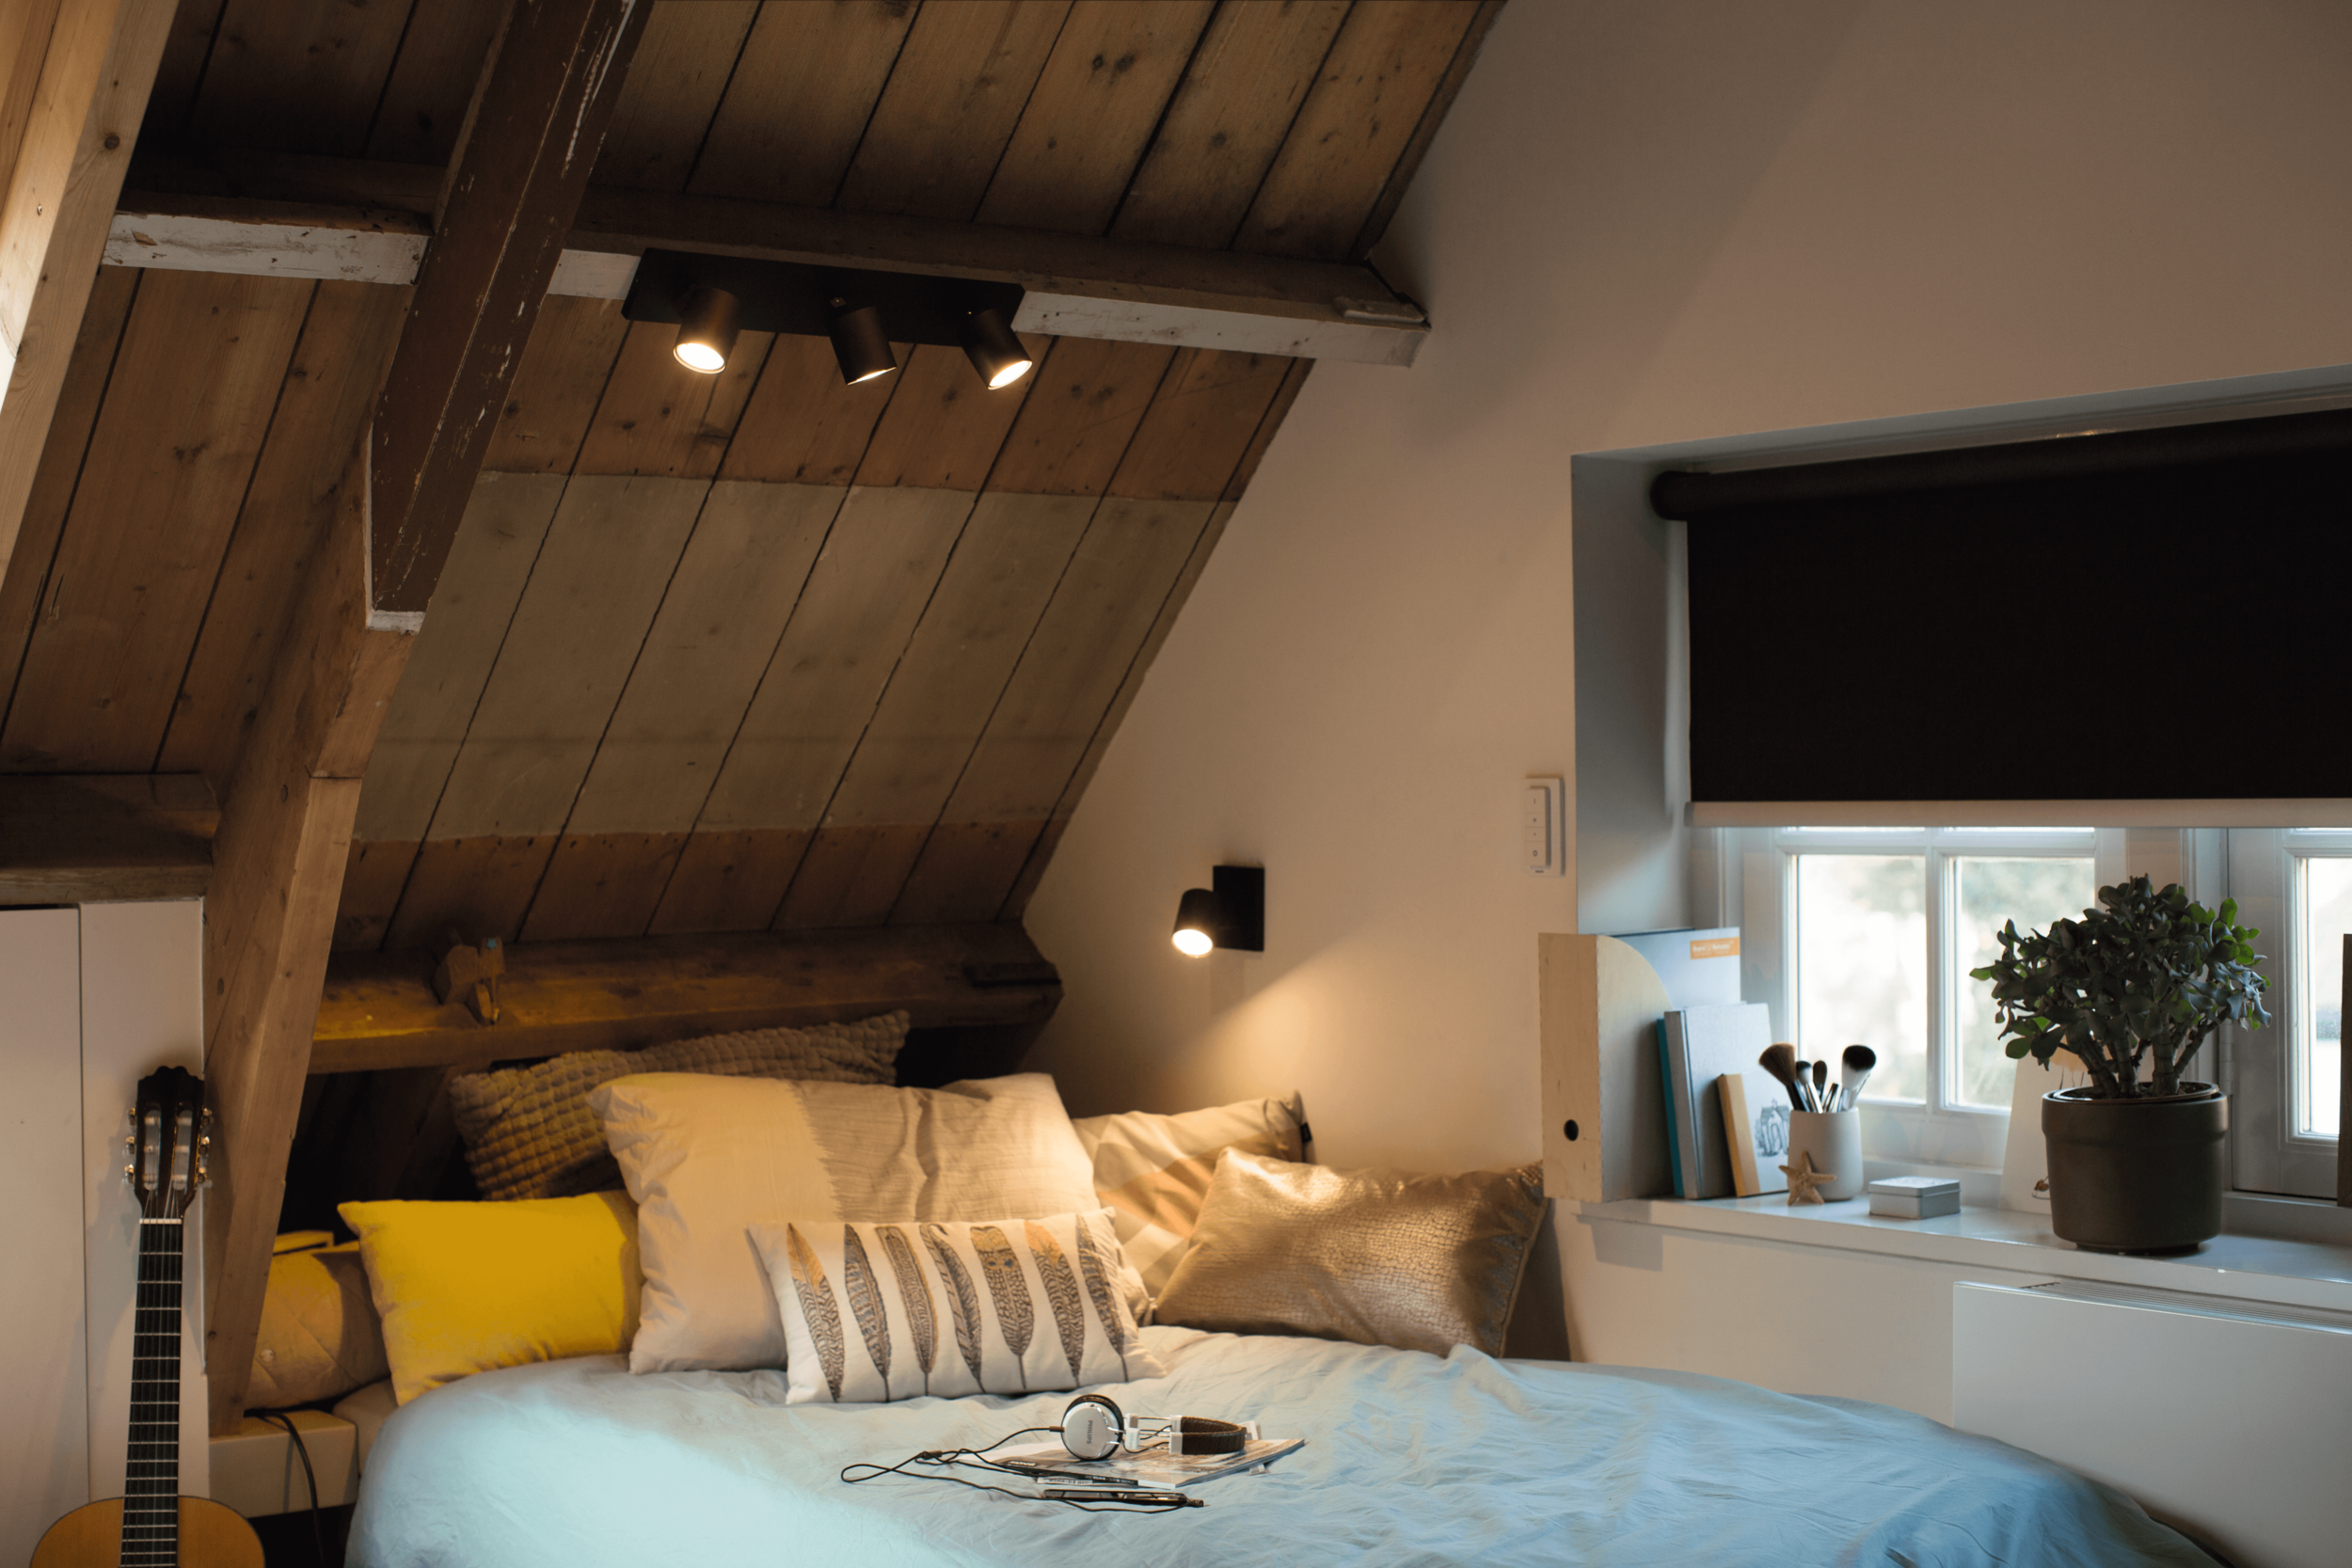 Philips Hue White Ambiance GU10 used with Runner Spot Lights - Photograph Courtesy of Philips